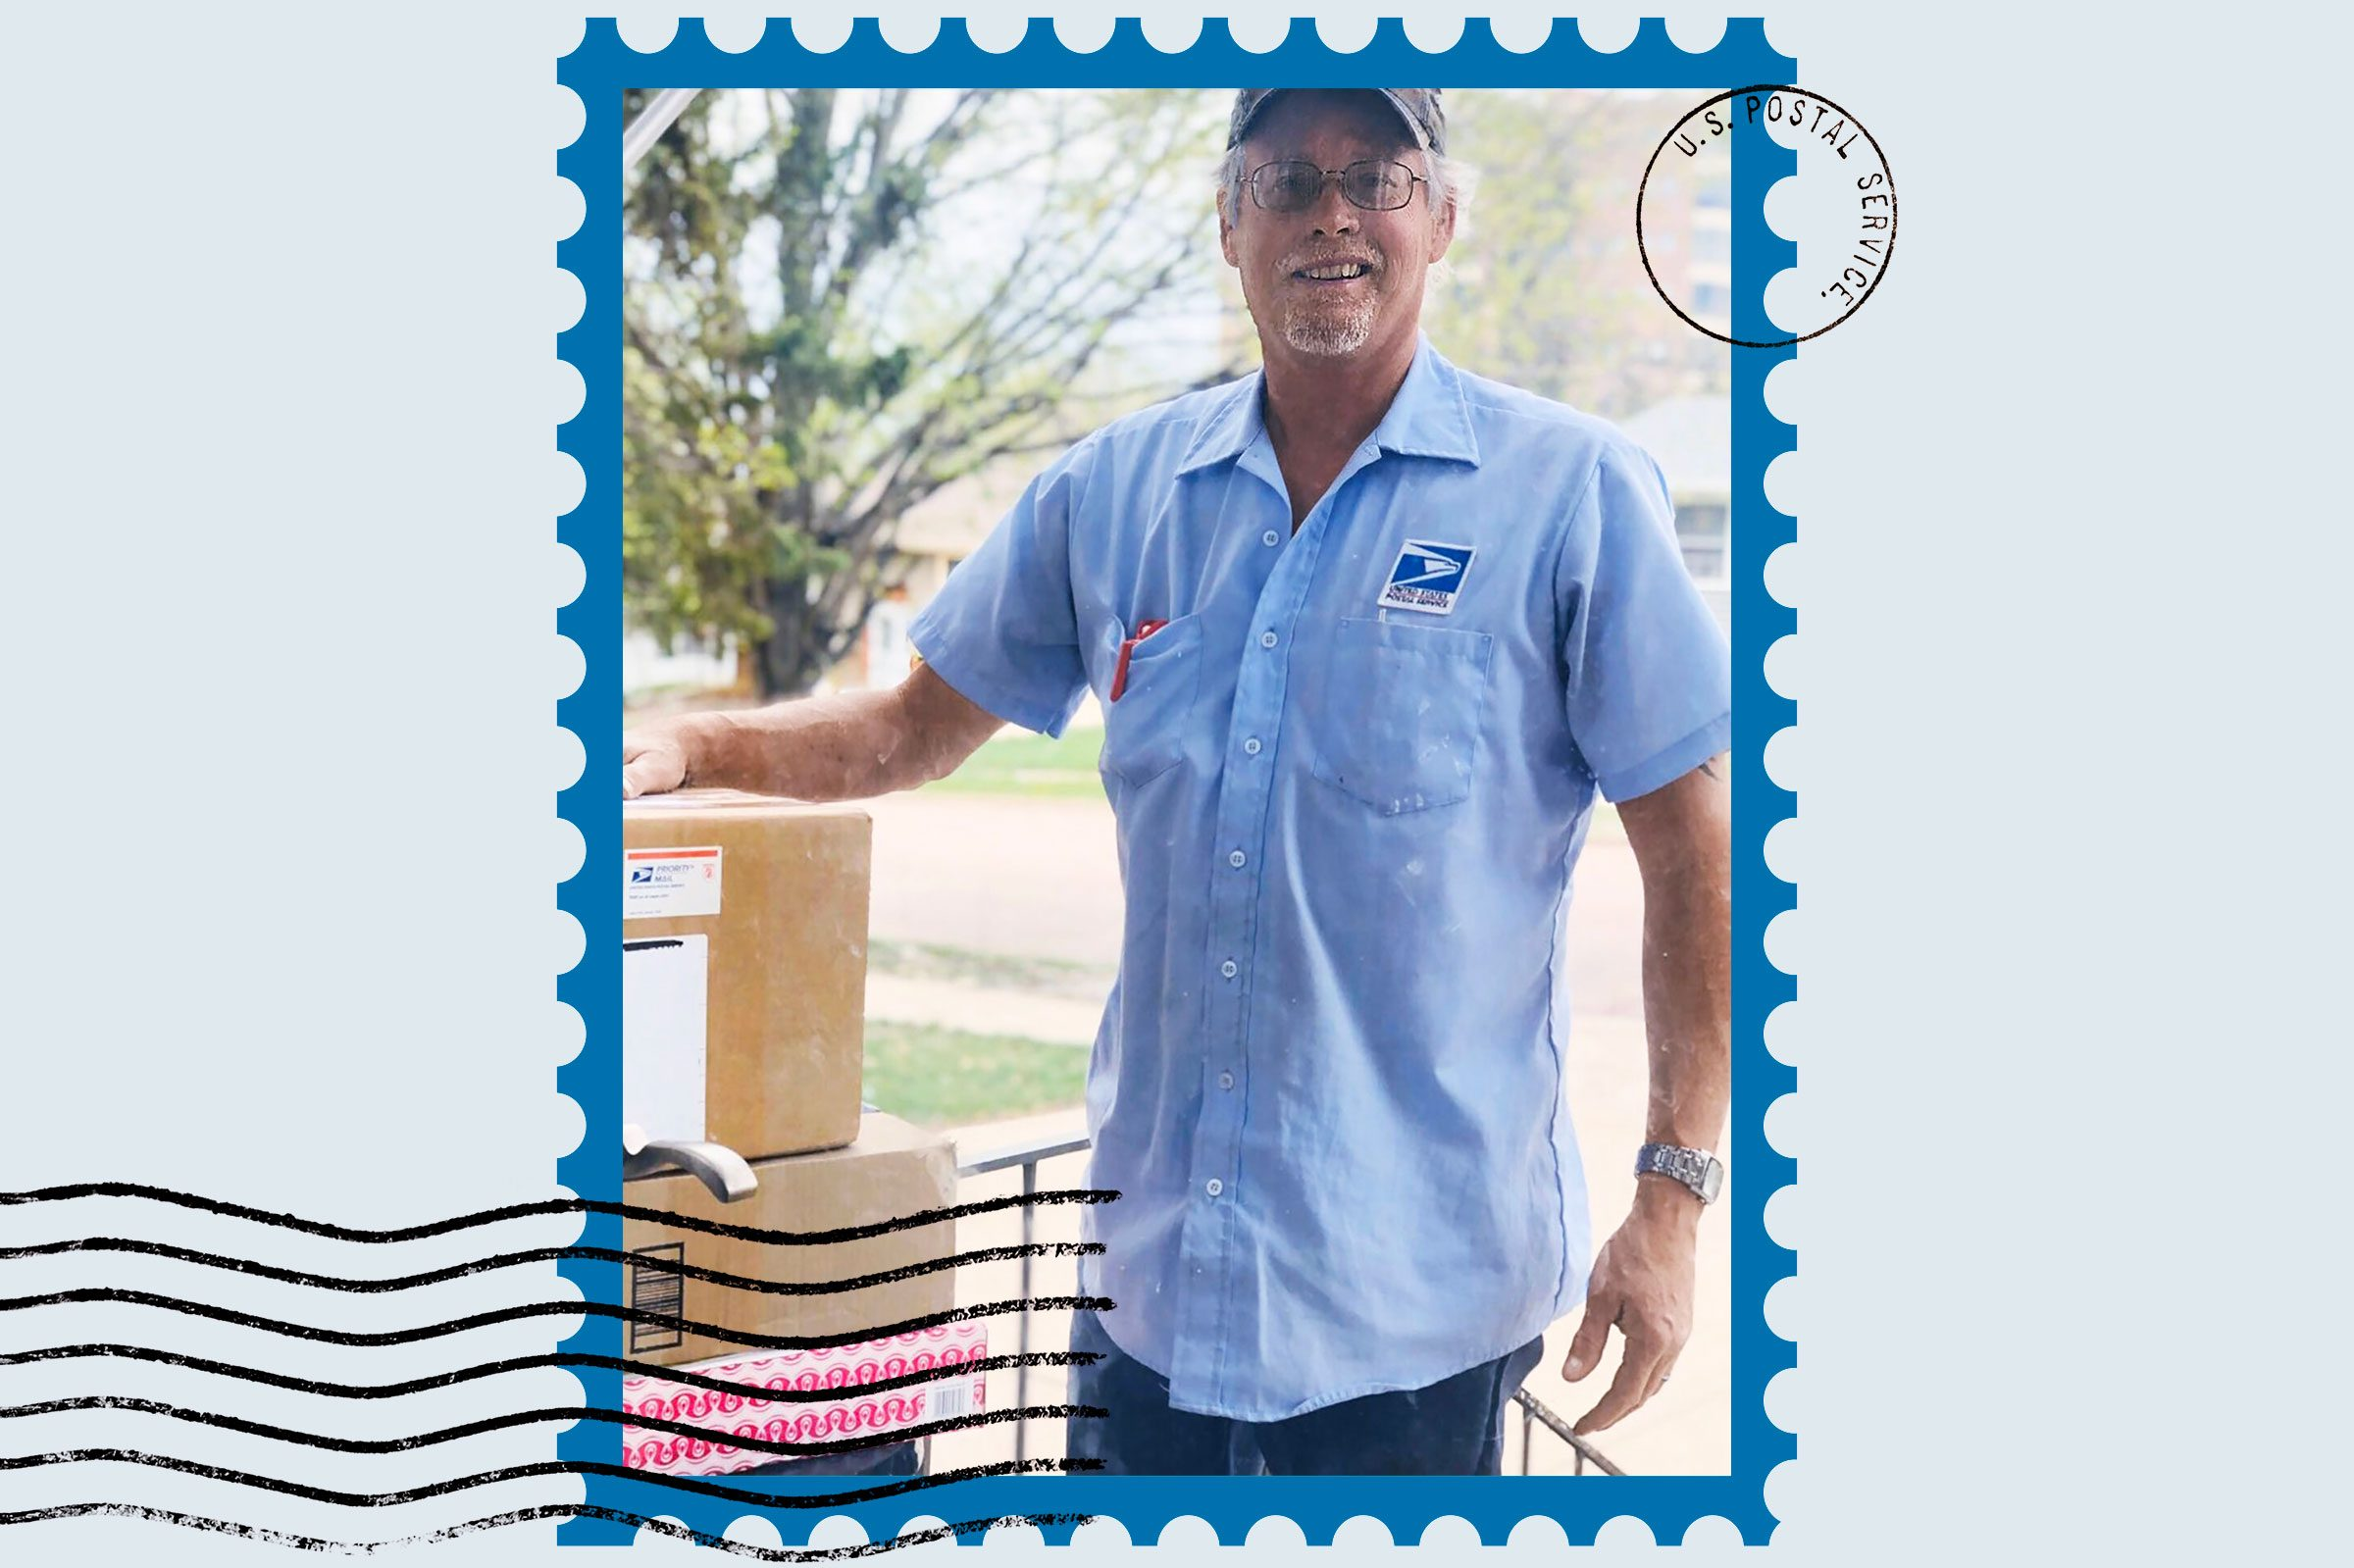 Doug the mail carrier